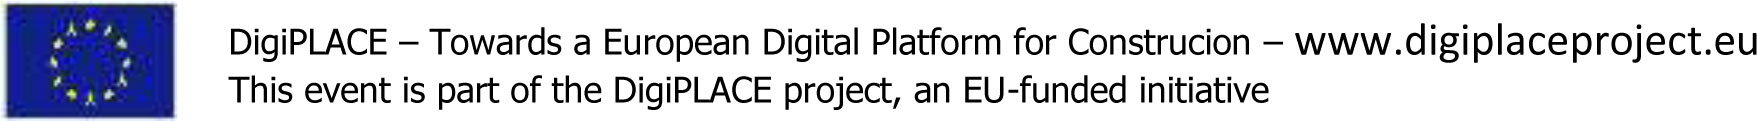 www.digiplaceproject.eu